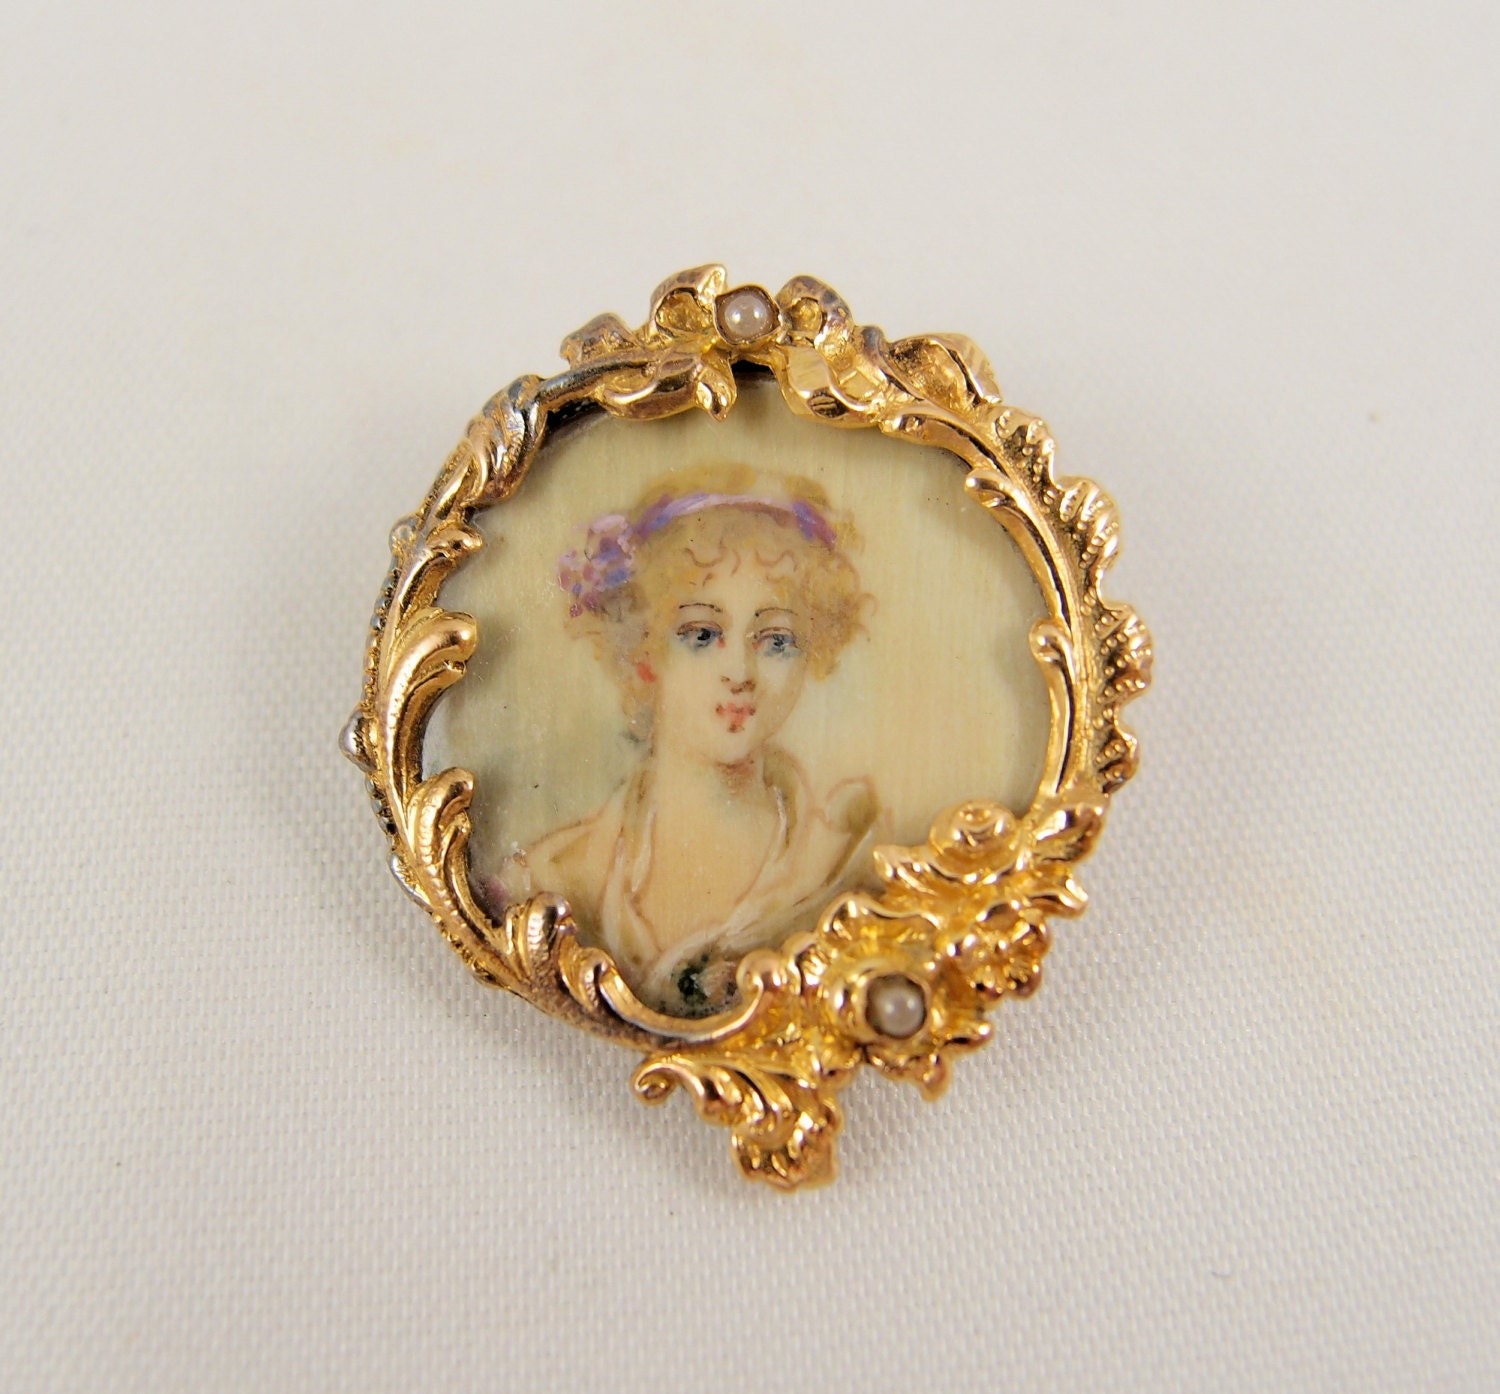 hunter img carryover some brooches early in with brooch piece september gold solid we diamonds elements romantic victorian quite and georgian sold jewelry pearls this ridge